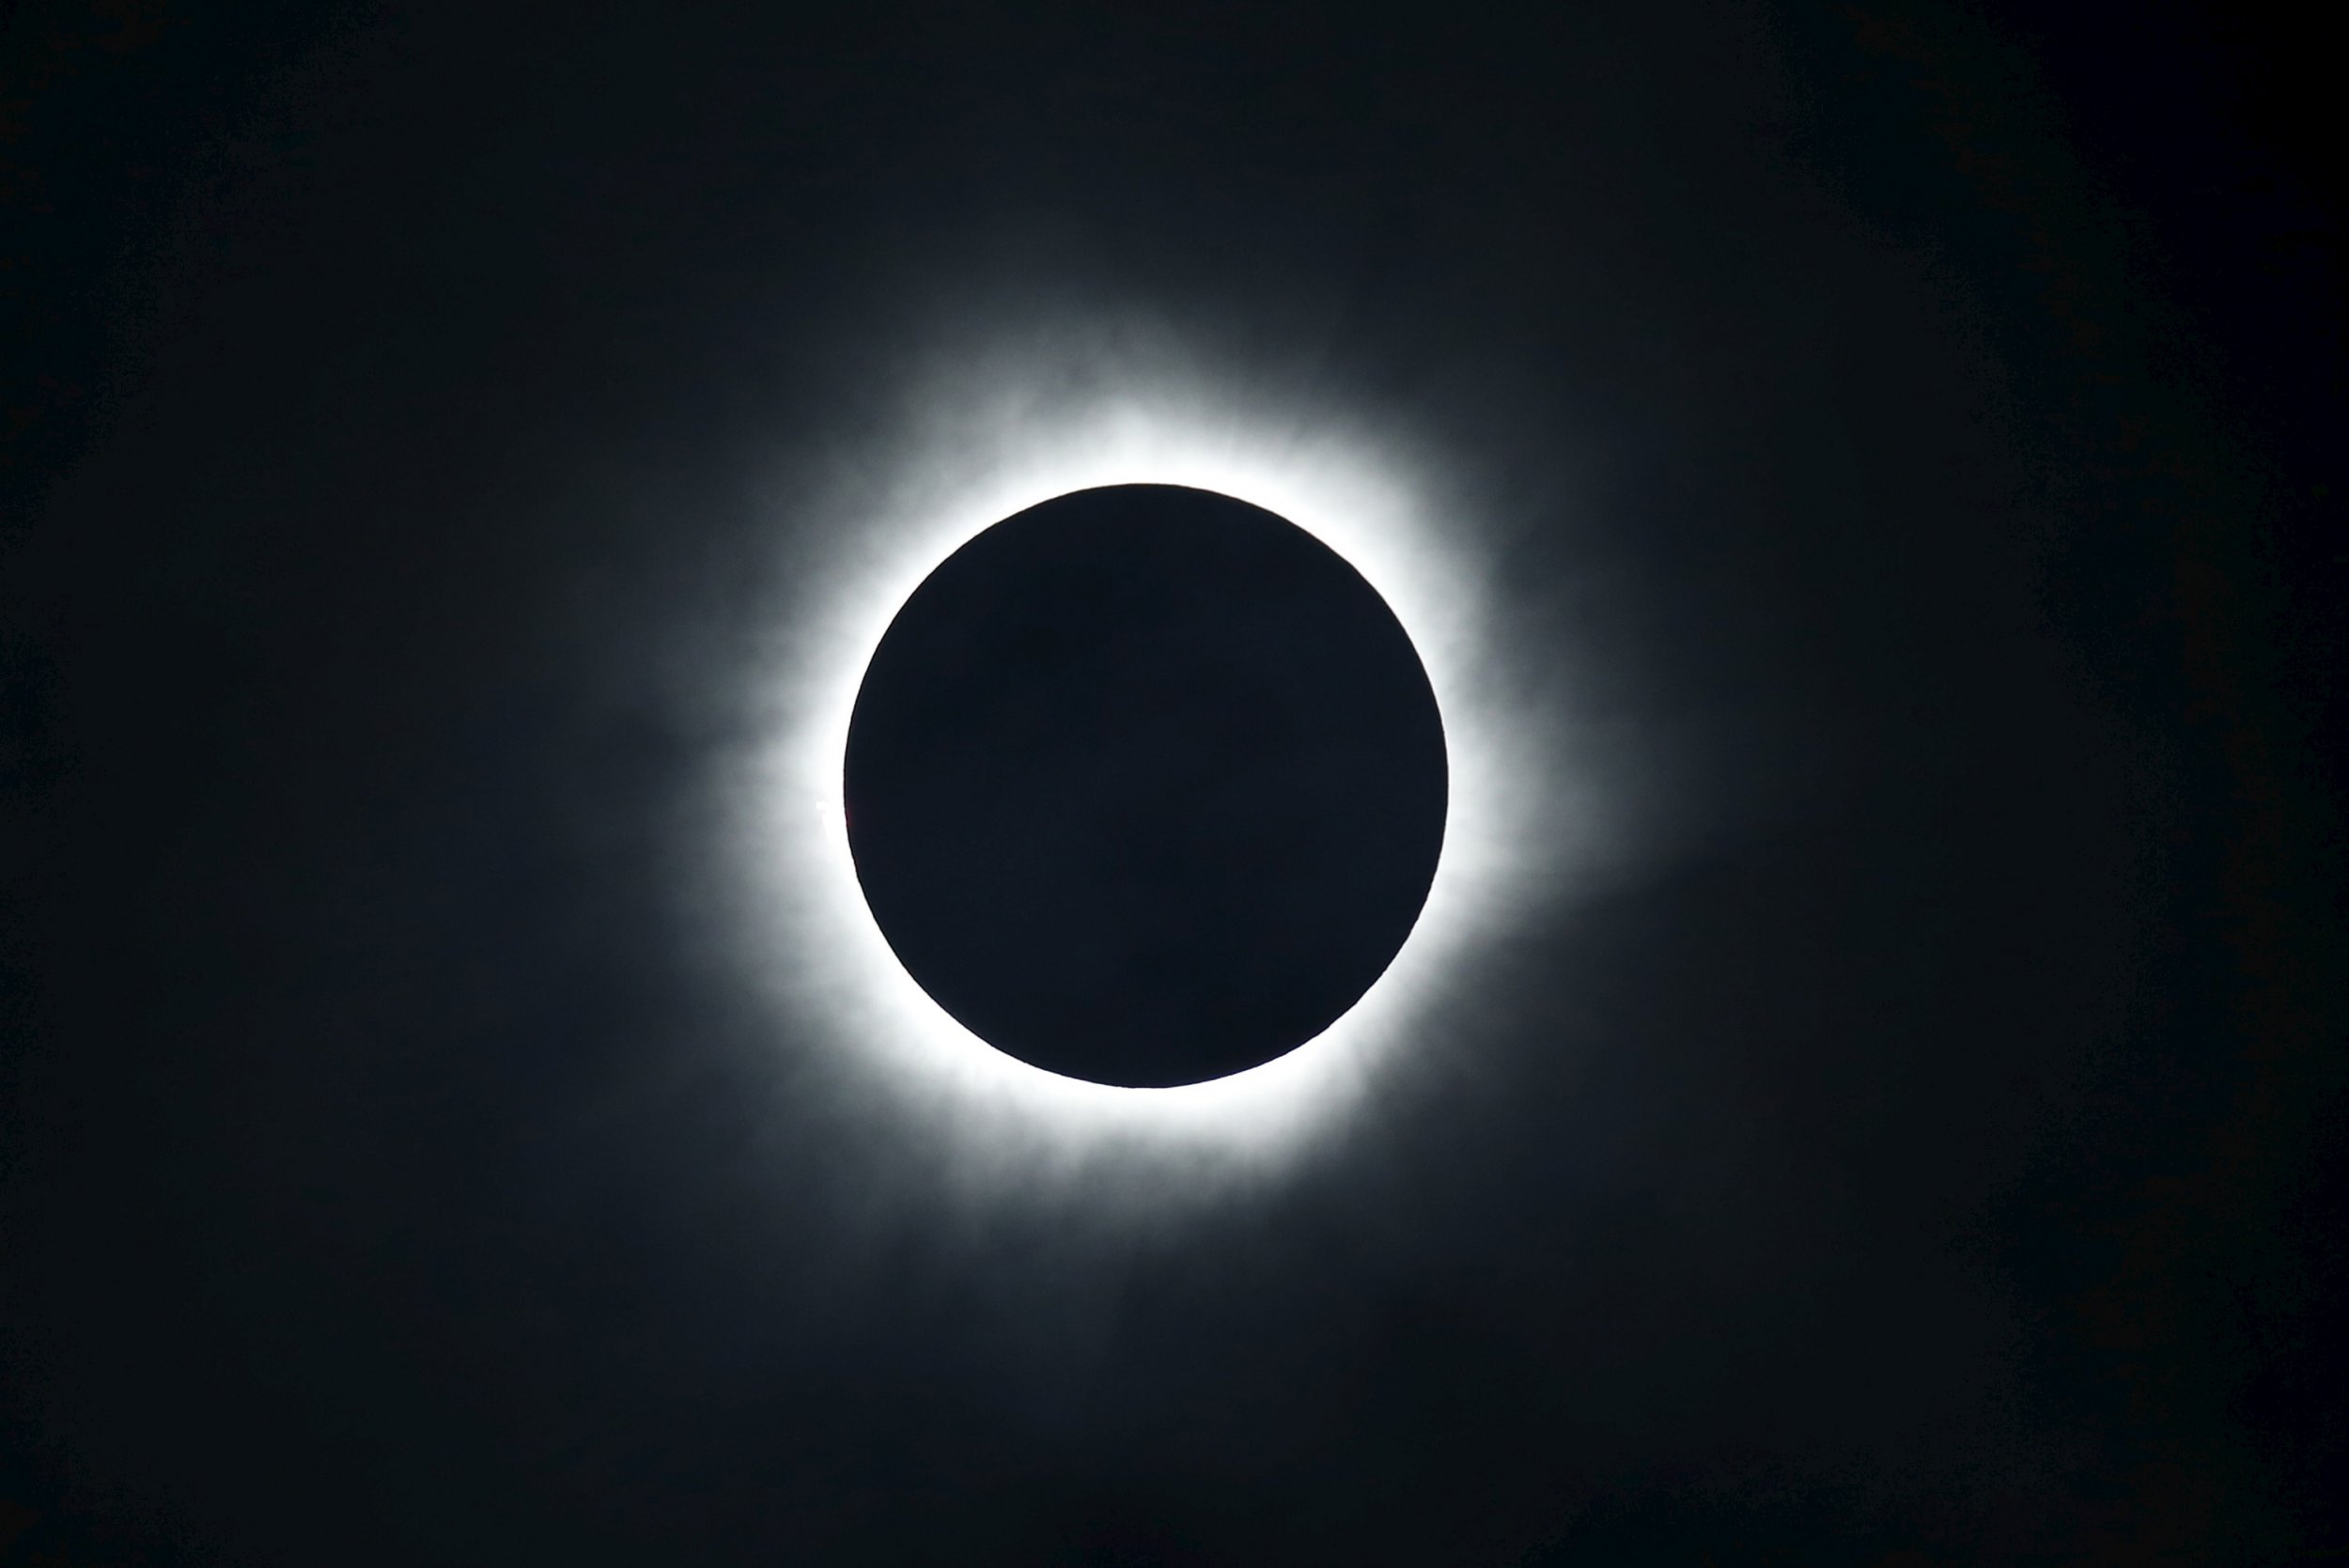 total solar eclipse 2017 how to watch on tv or live stream online if you re not in its path